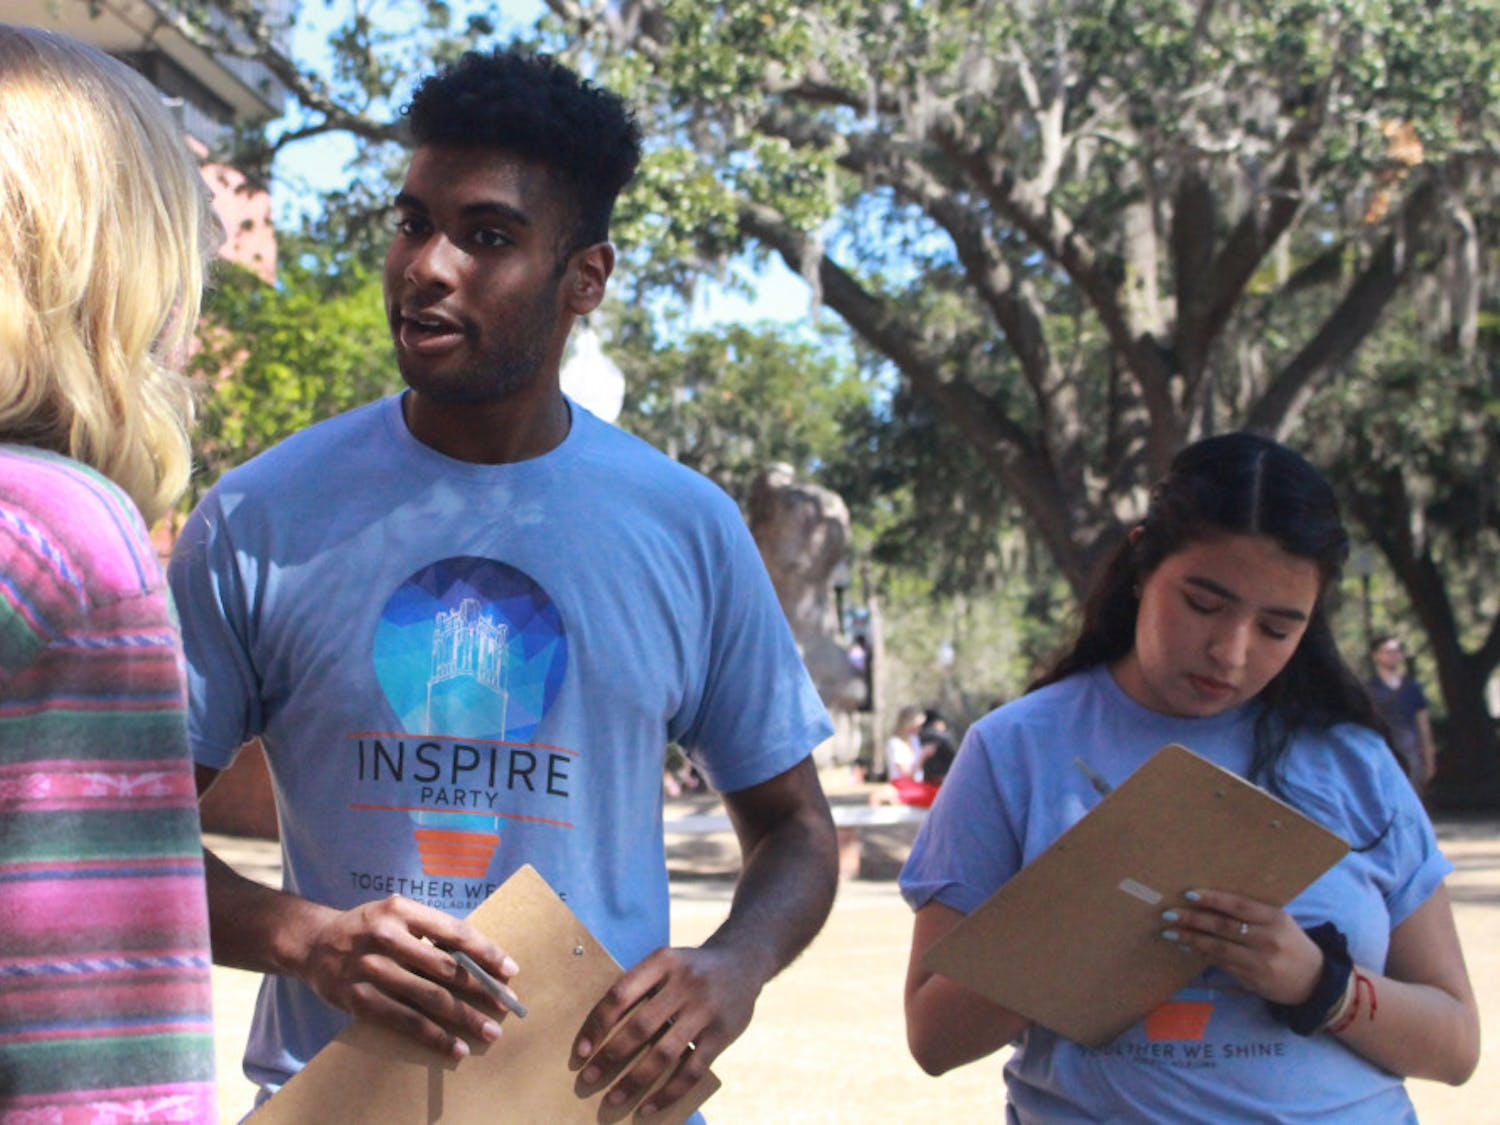 Che John, a 19-year-old UF finance sophomore, and Maria Espinoza, a 19-year-old UF criminology sophomore, talked to students Tuesday afternoon on Turlington Plaza. John and Espinoza are both members of Inspire Party, and they spent the afternoon reaching out to students about the upcoming Student Government elections.